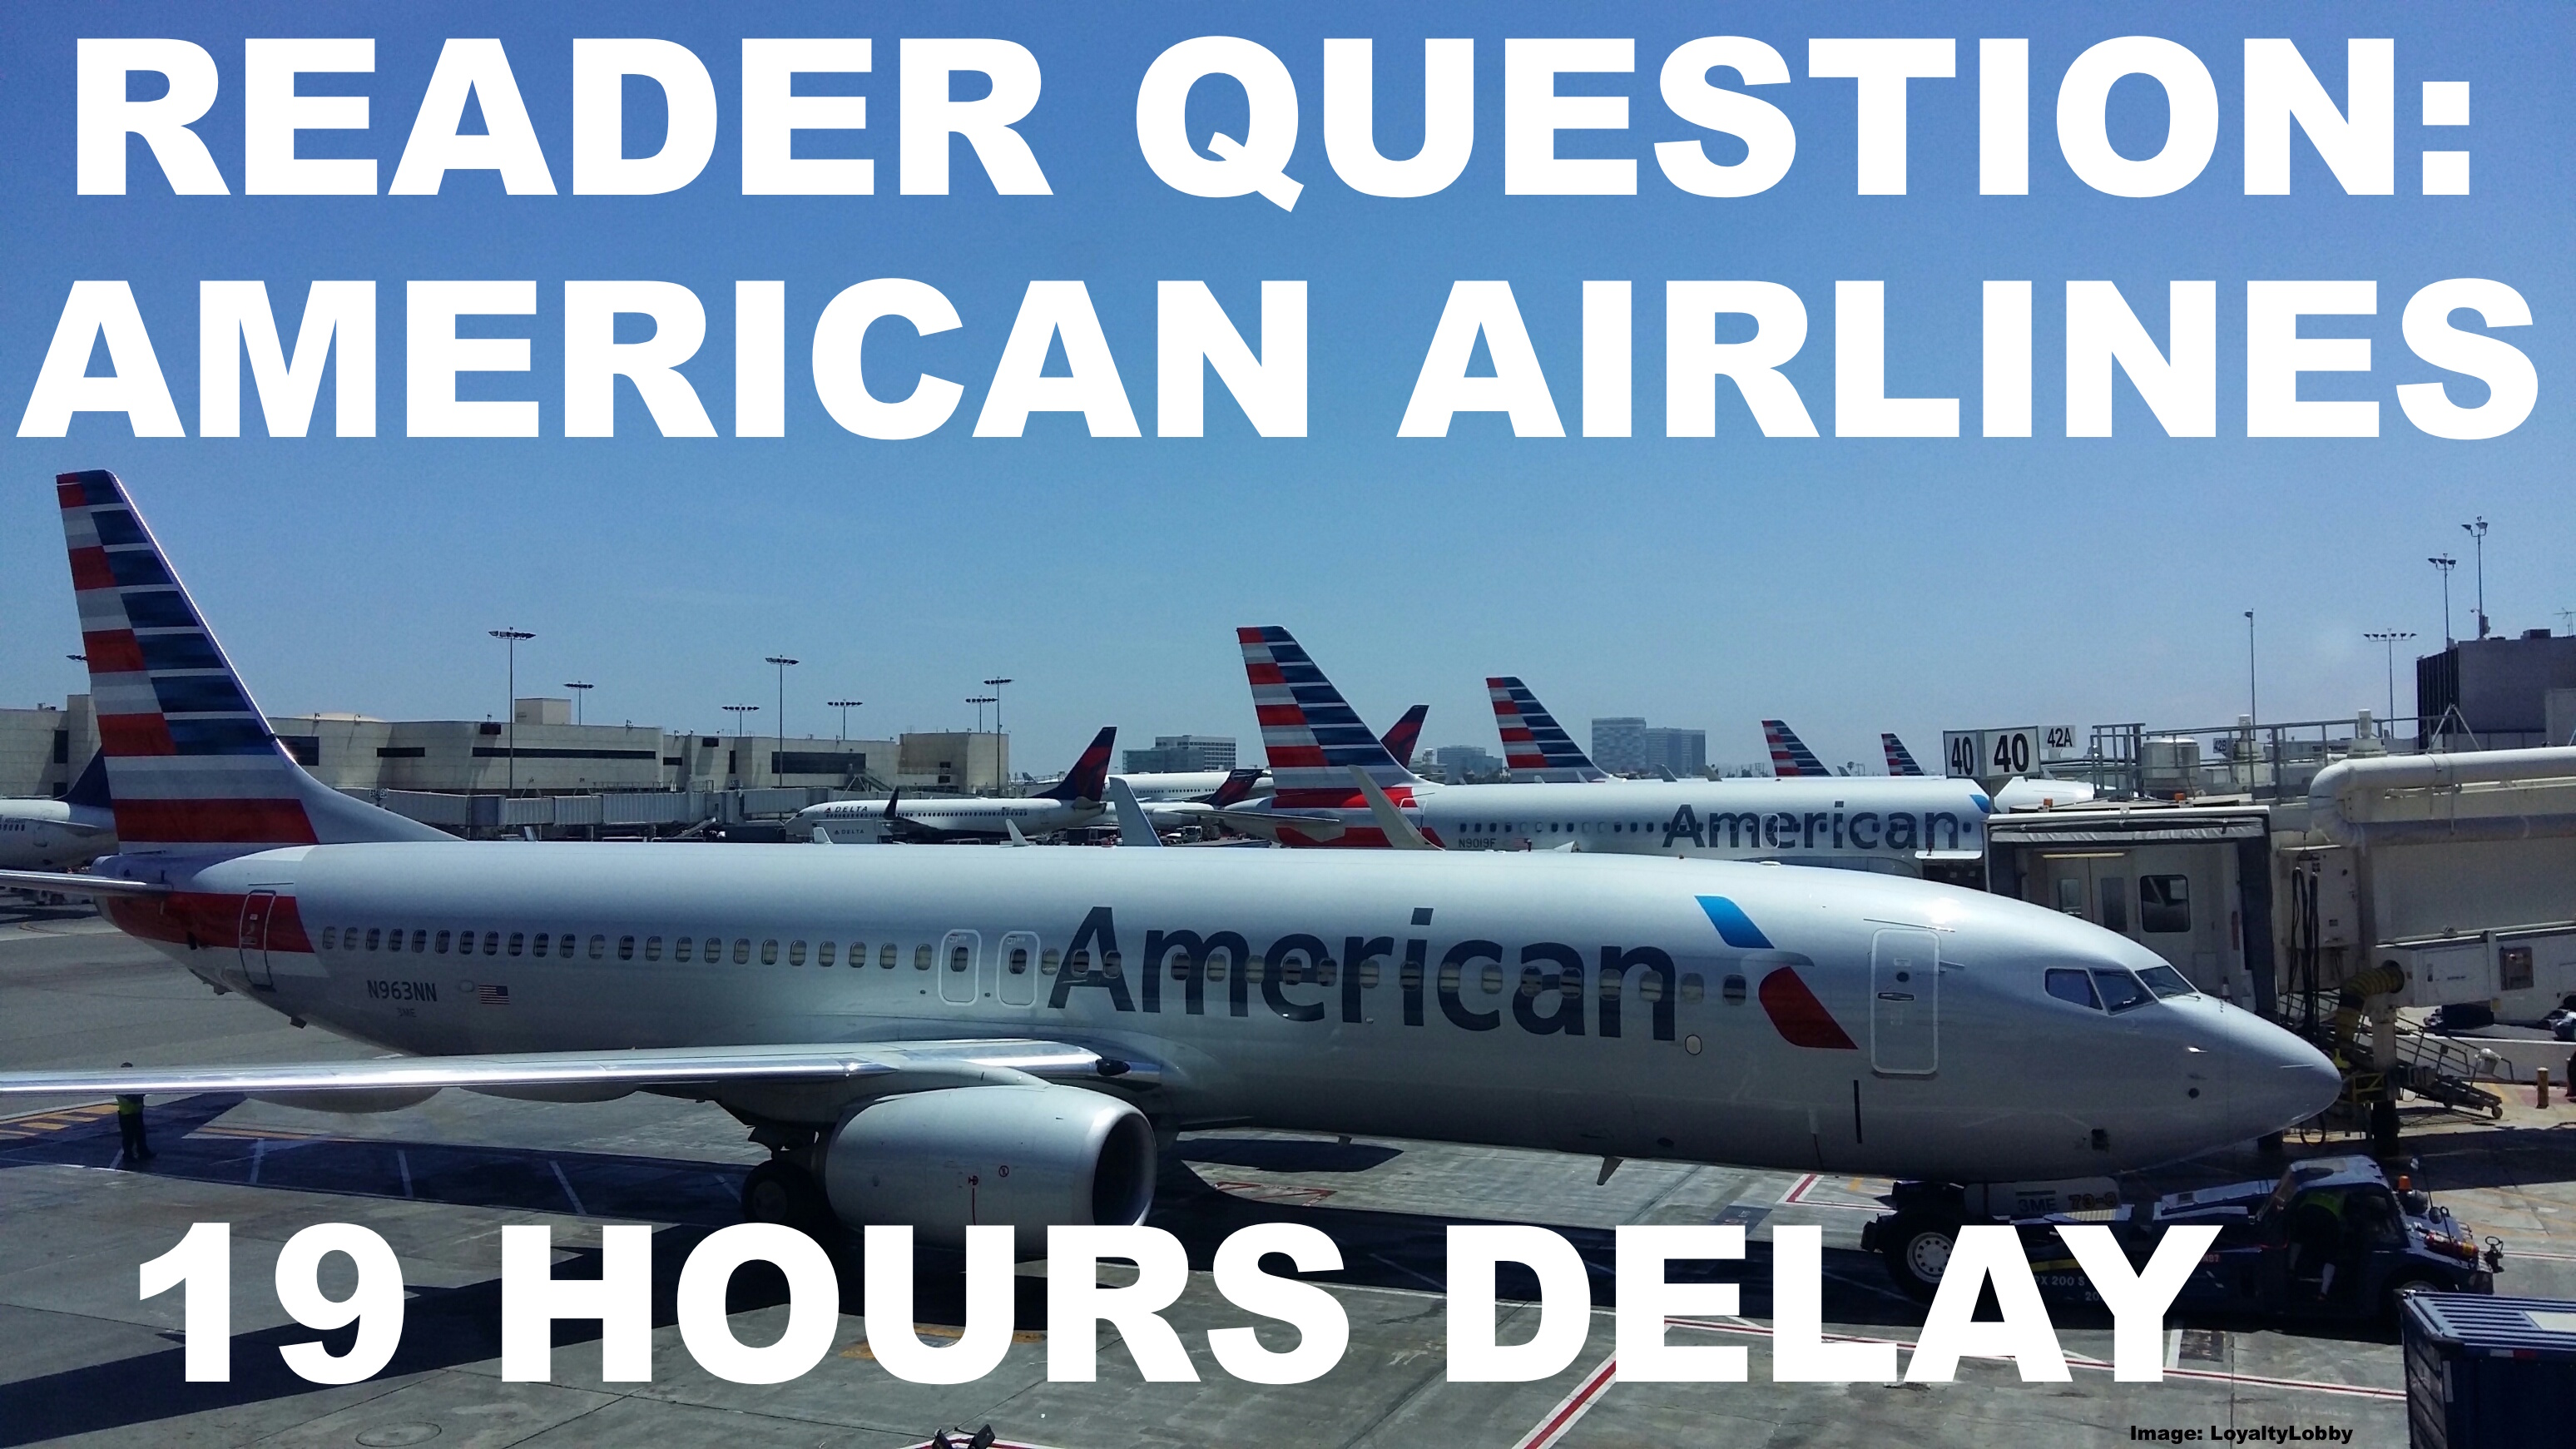 Reader Question American Airlines 19 Hour Delay On